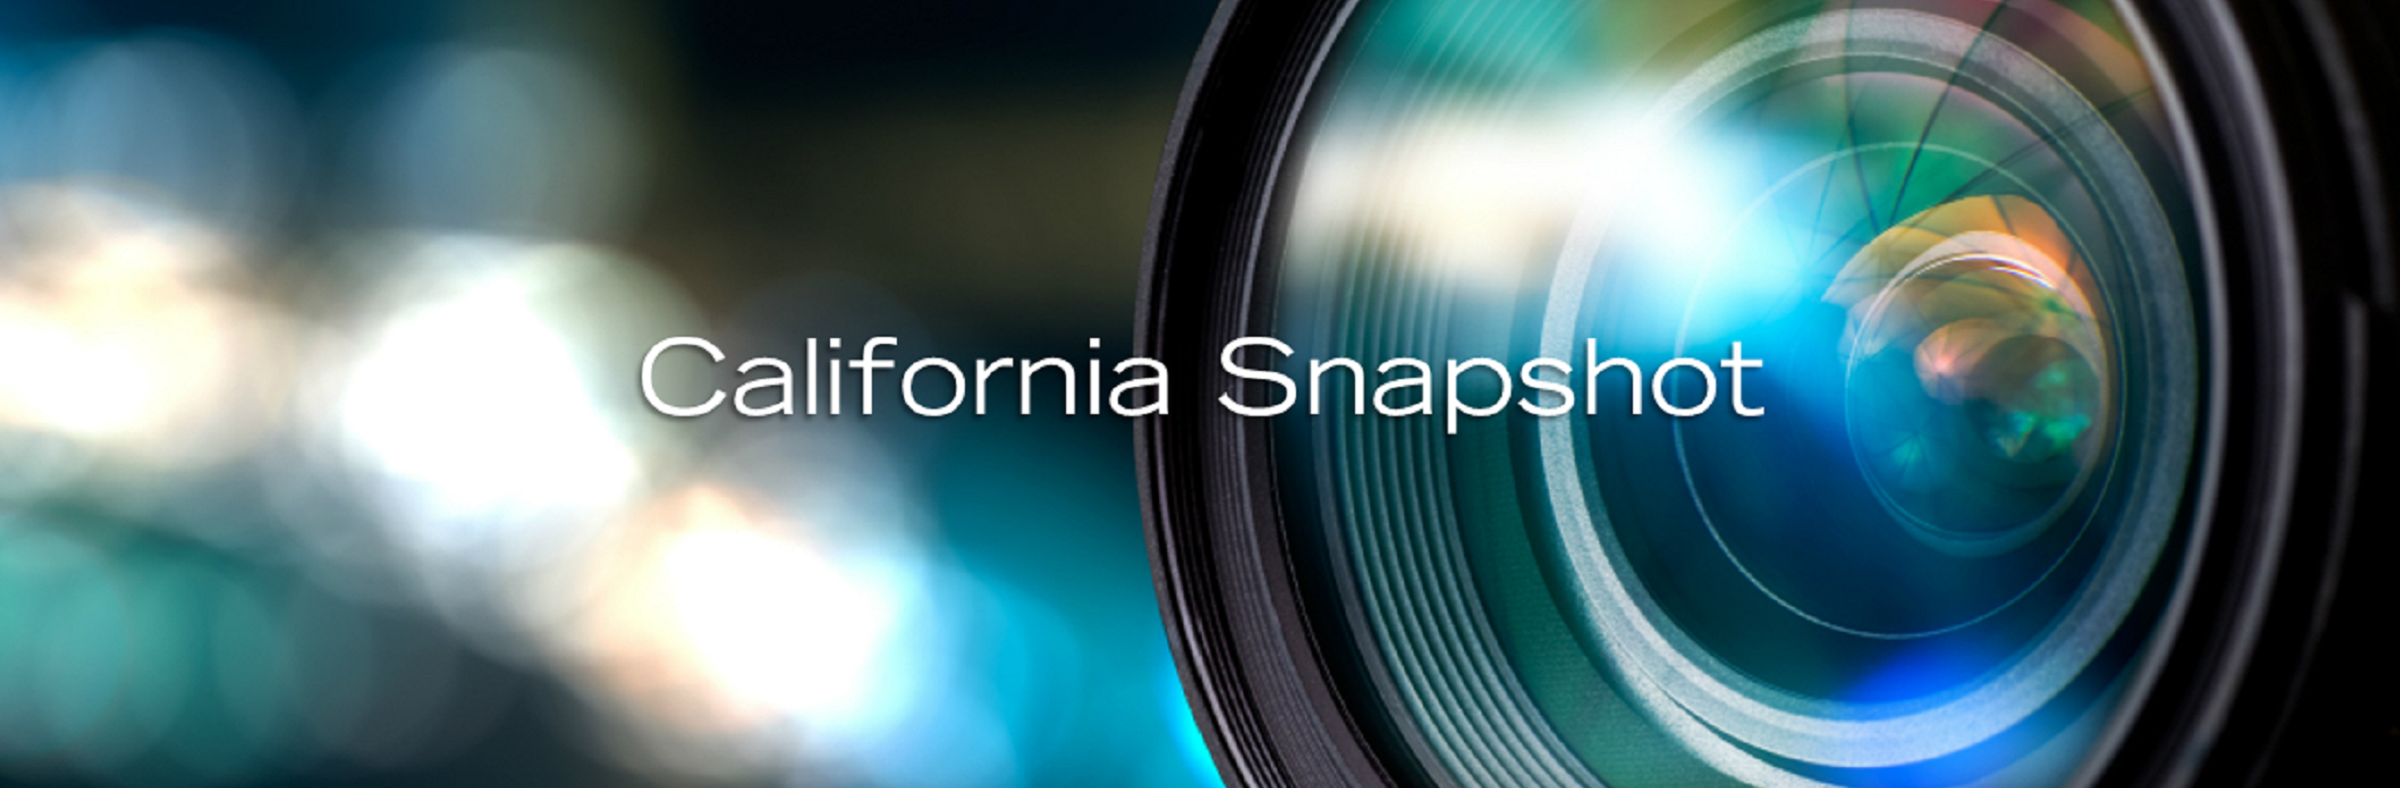 California Snapshot